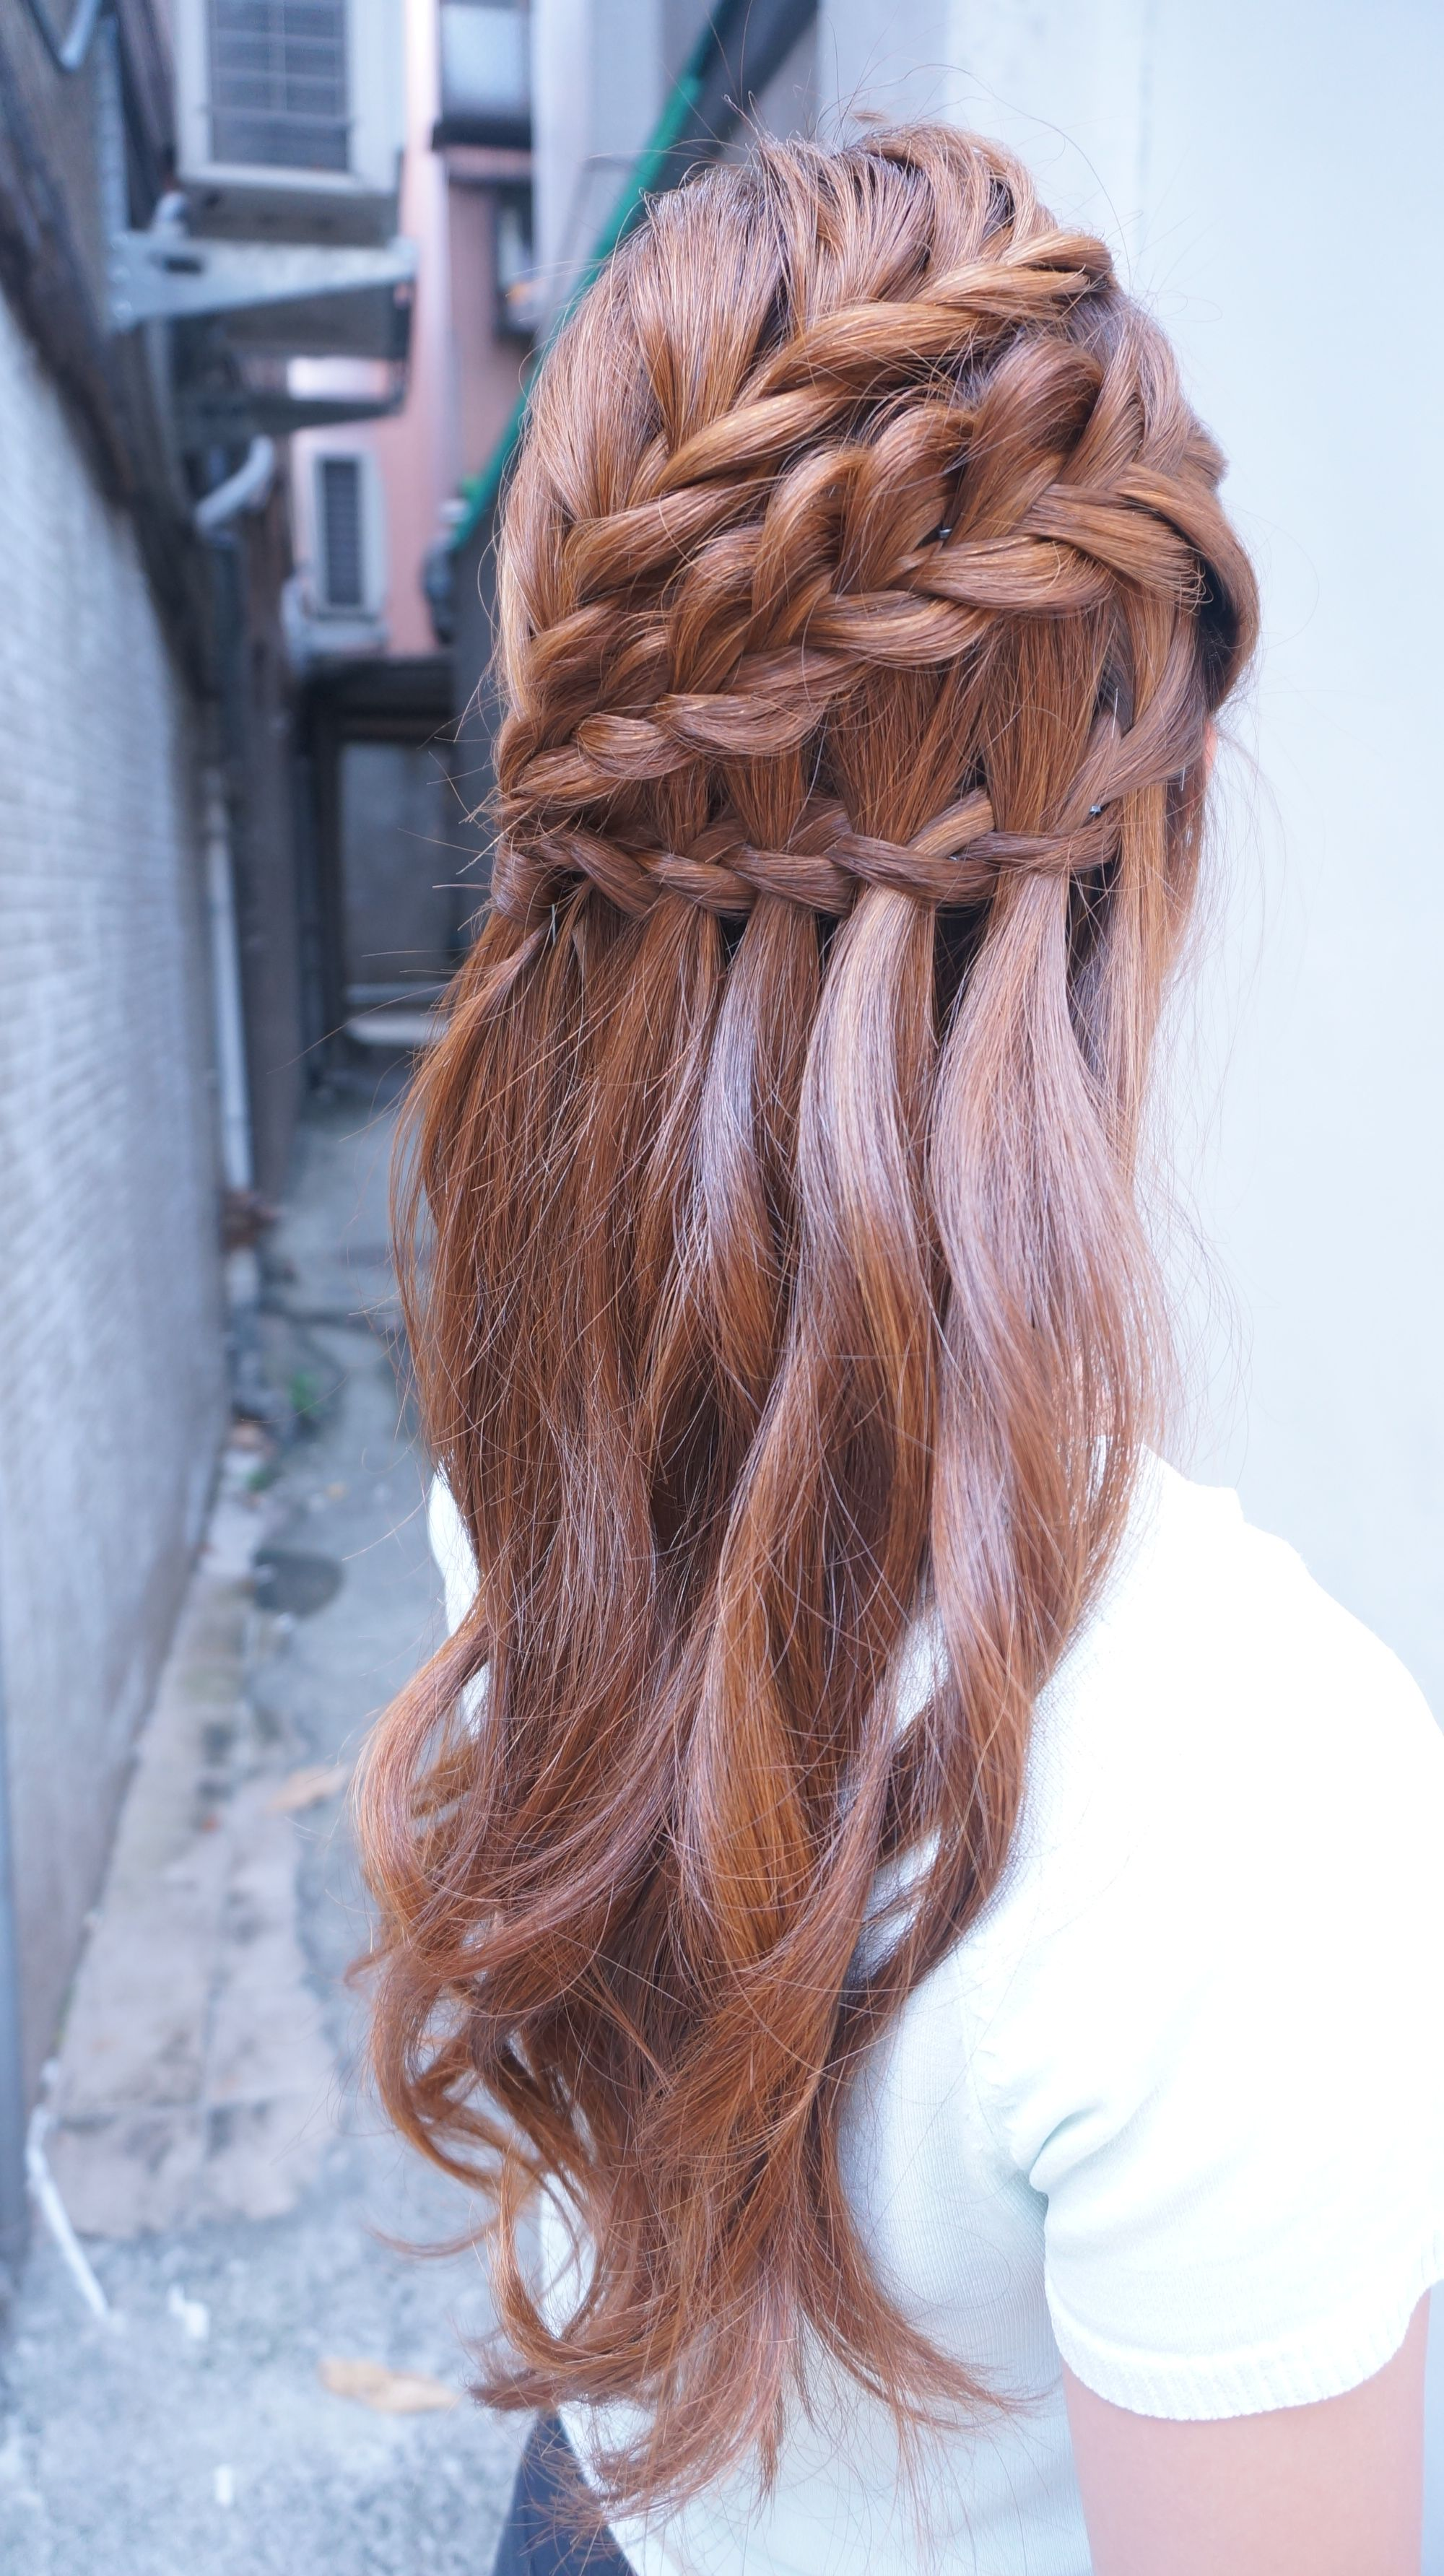 Ruler hair dressing japan makoto ishii braids pinterest hair